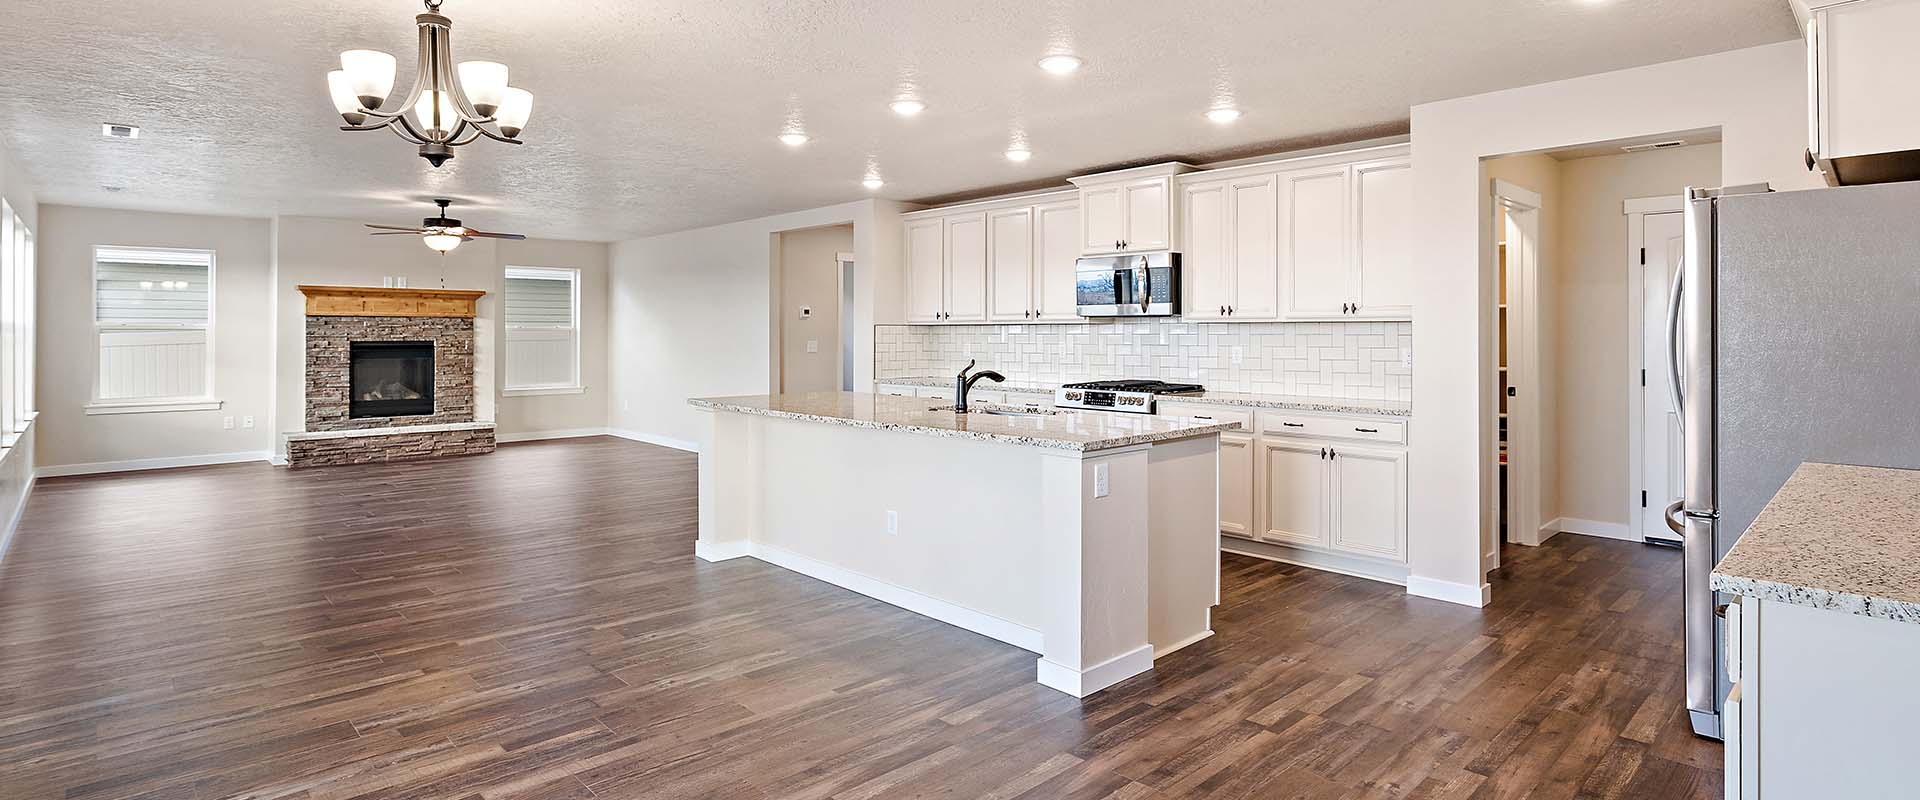 Yosemite_Kitchen 2_Hubble_Homes_New_Homes_Boise.jpg